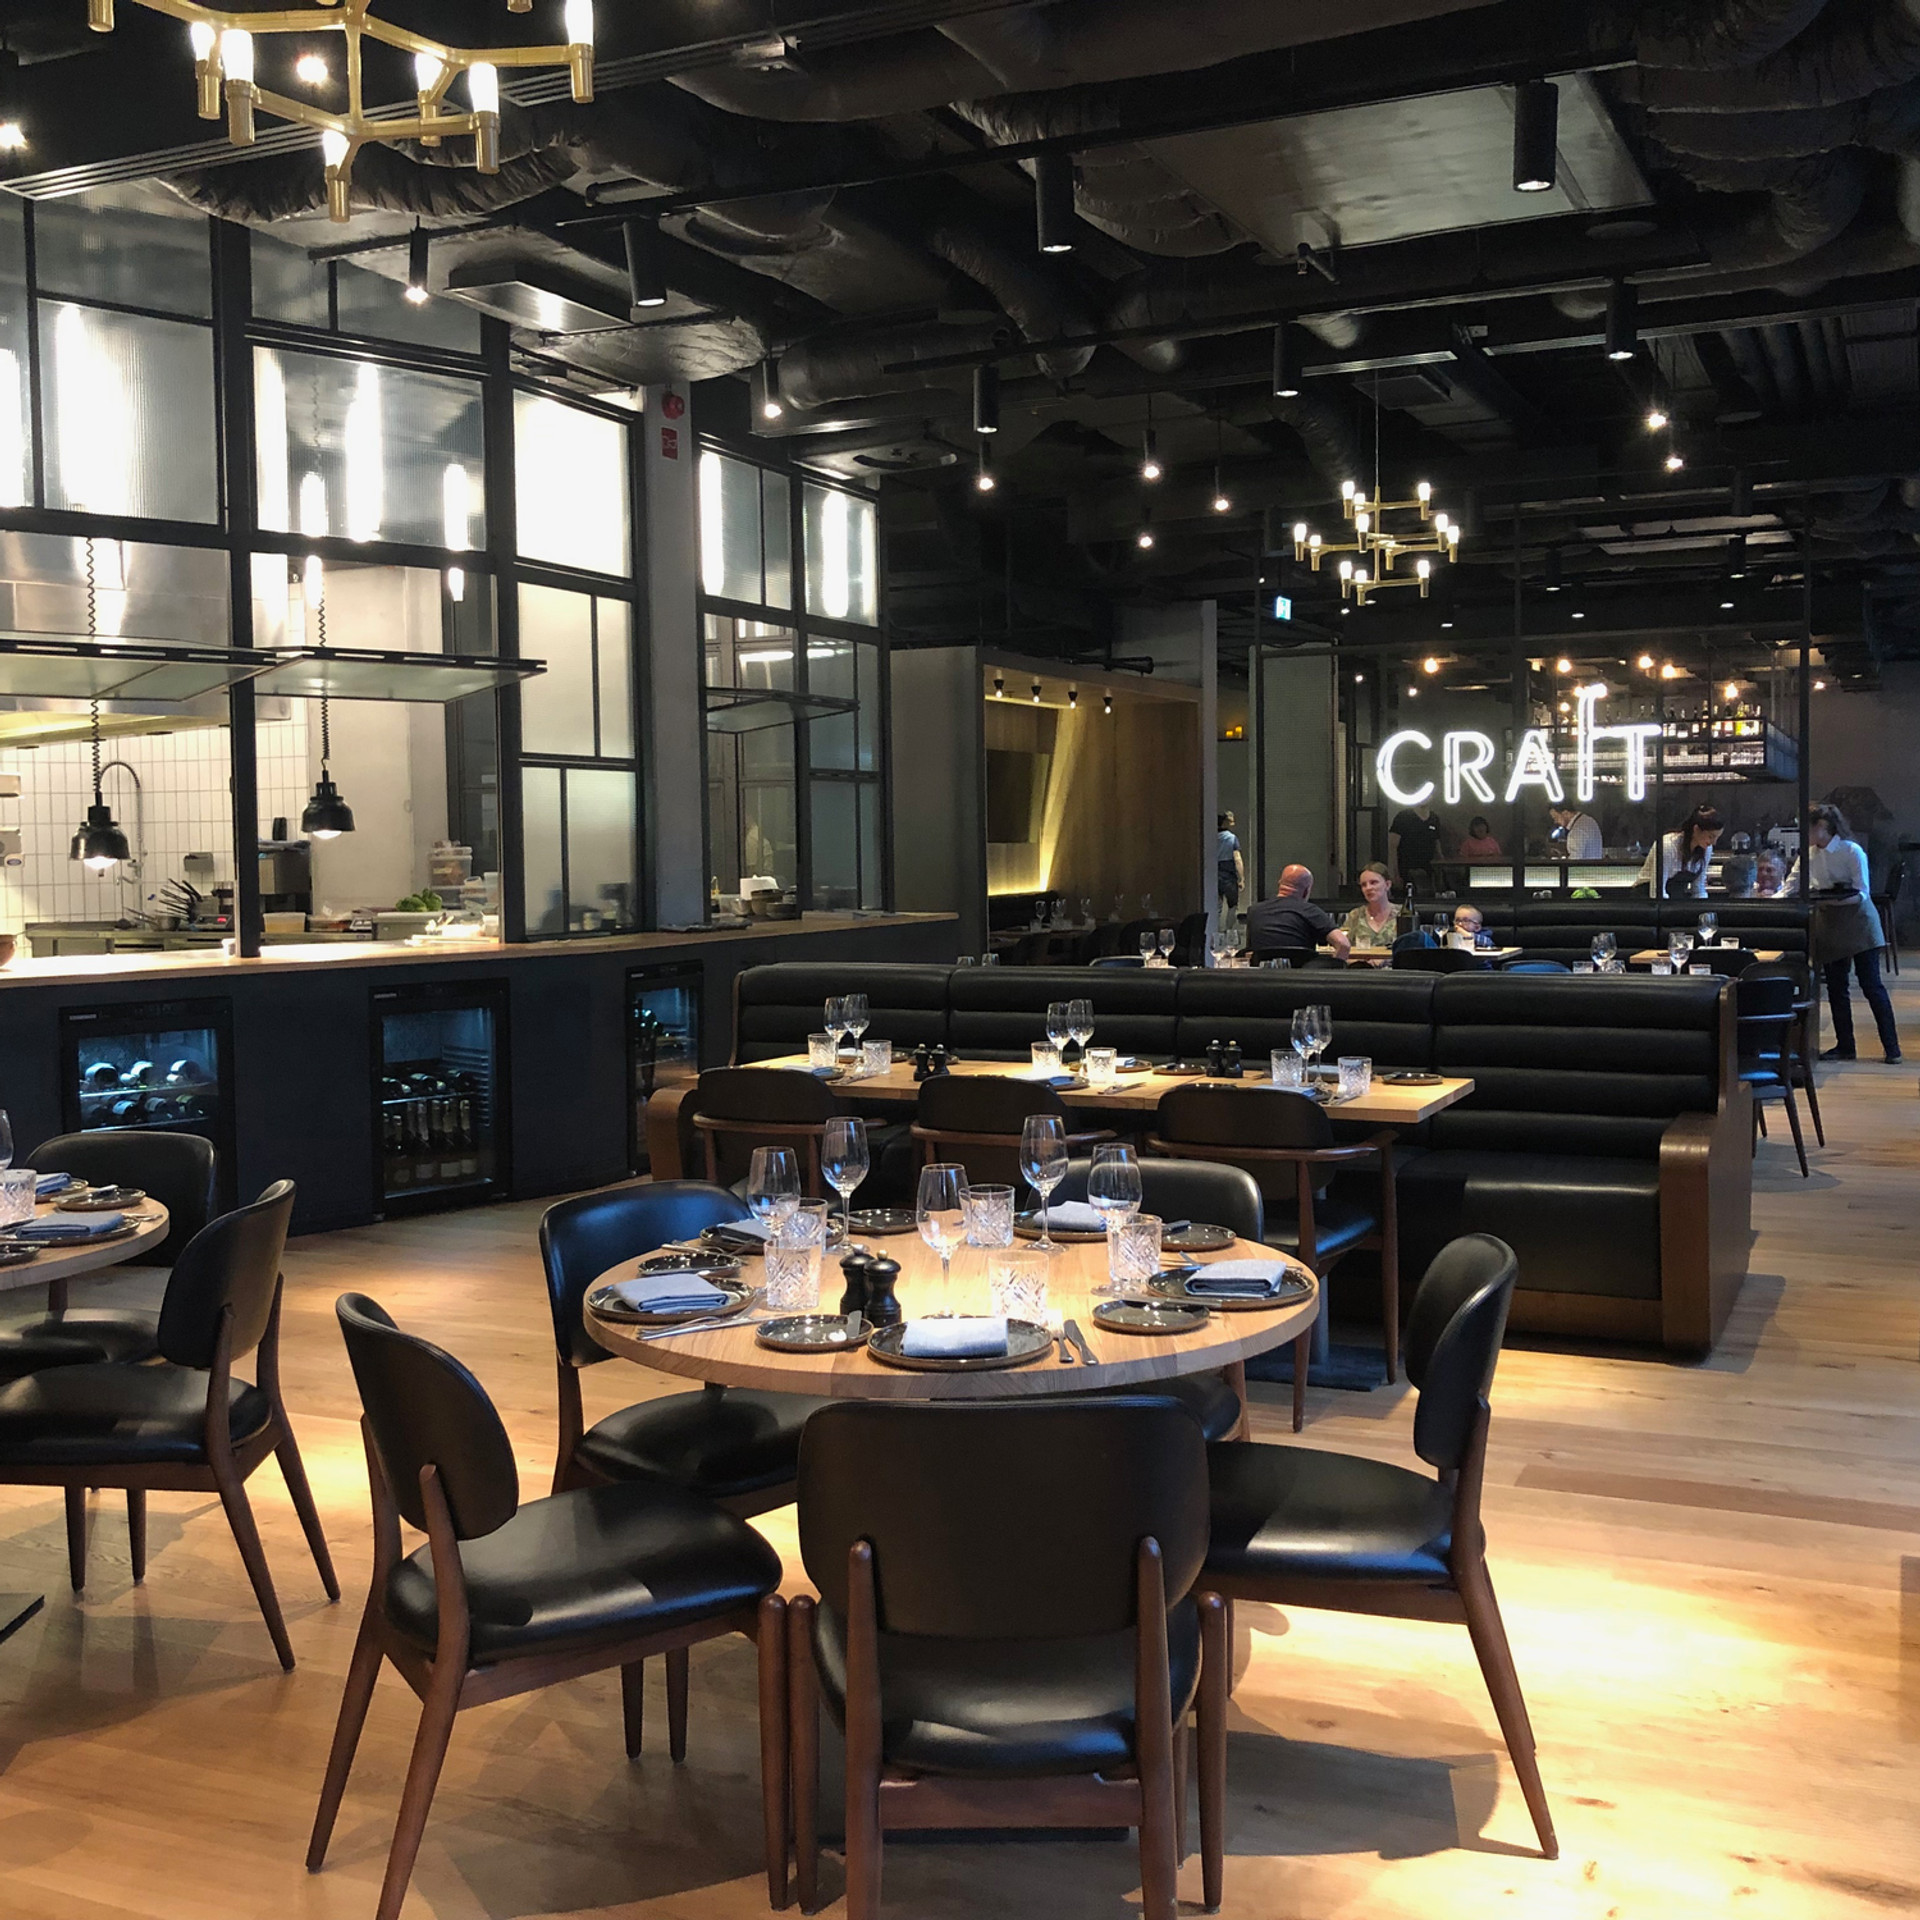 MGallery Wroclaw Craft - Modern Polish cuisine embracing local ingredients and culinary craftmanship